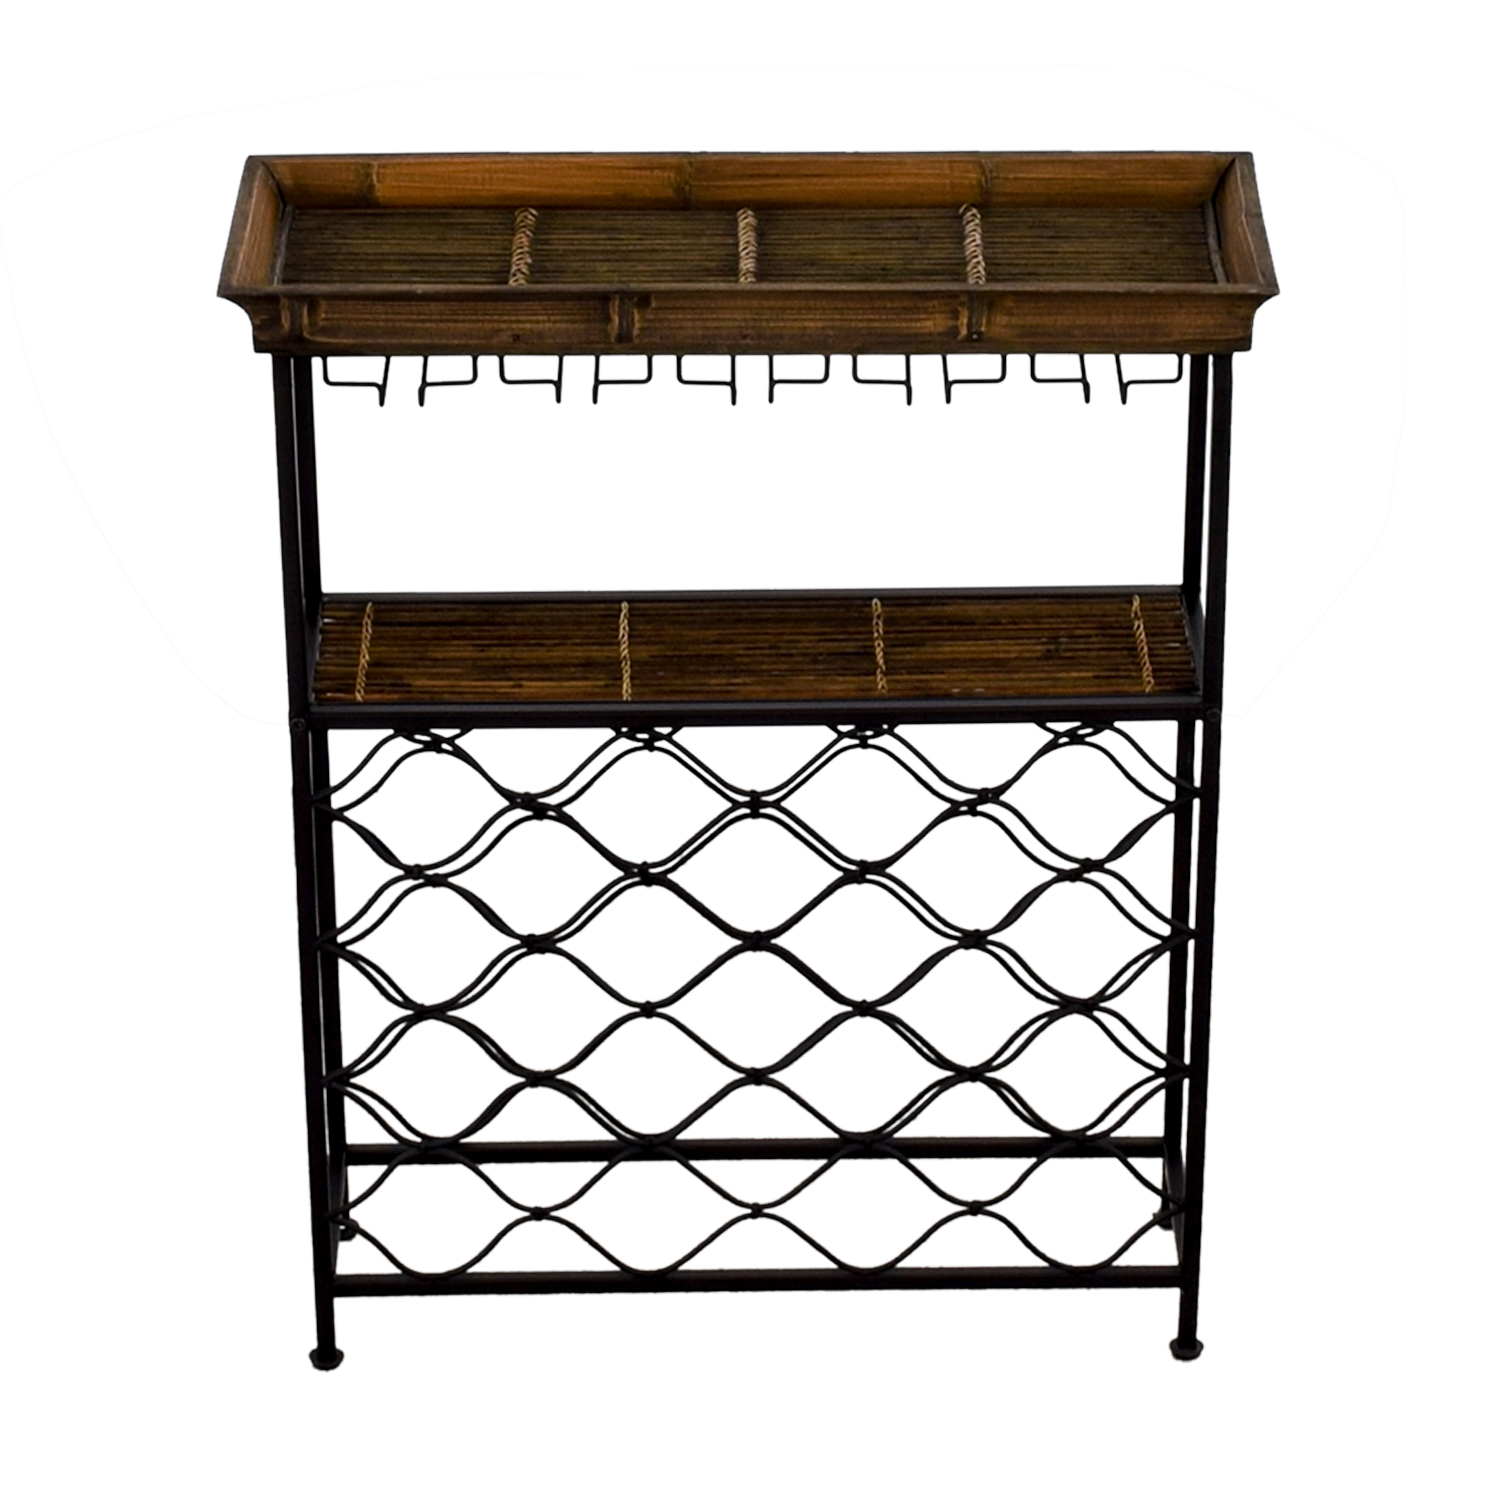 buy Vintage Wood and Metal Bar Rack online